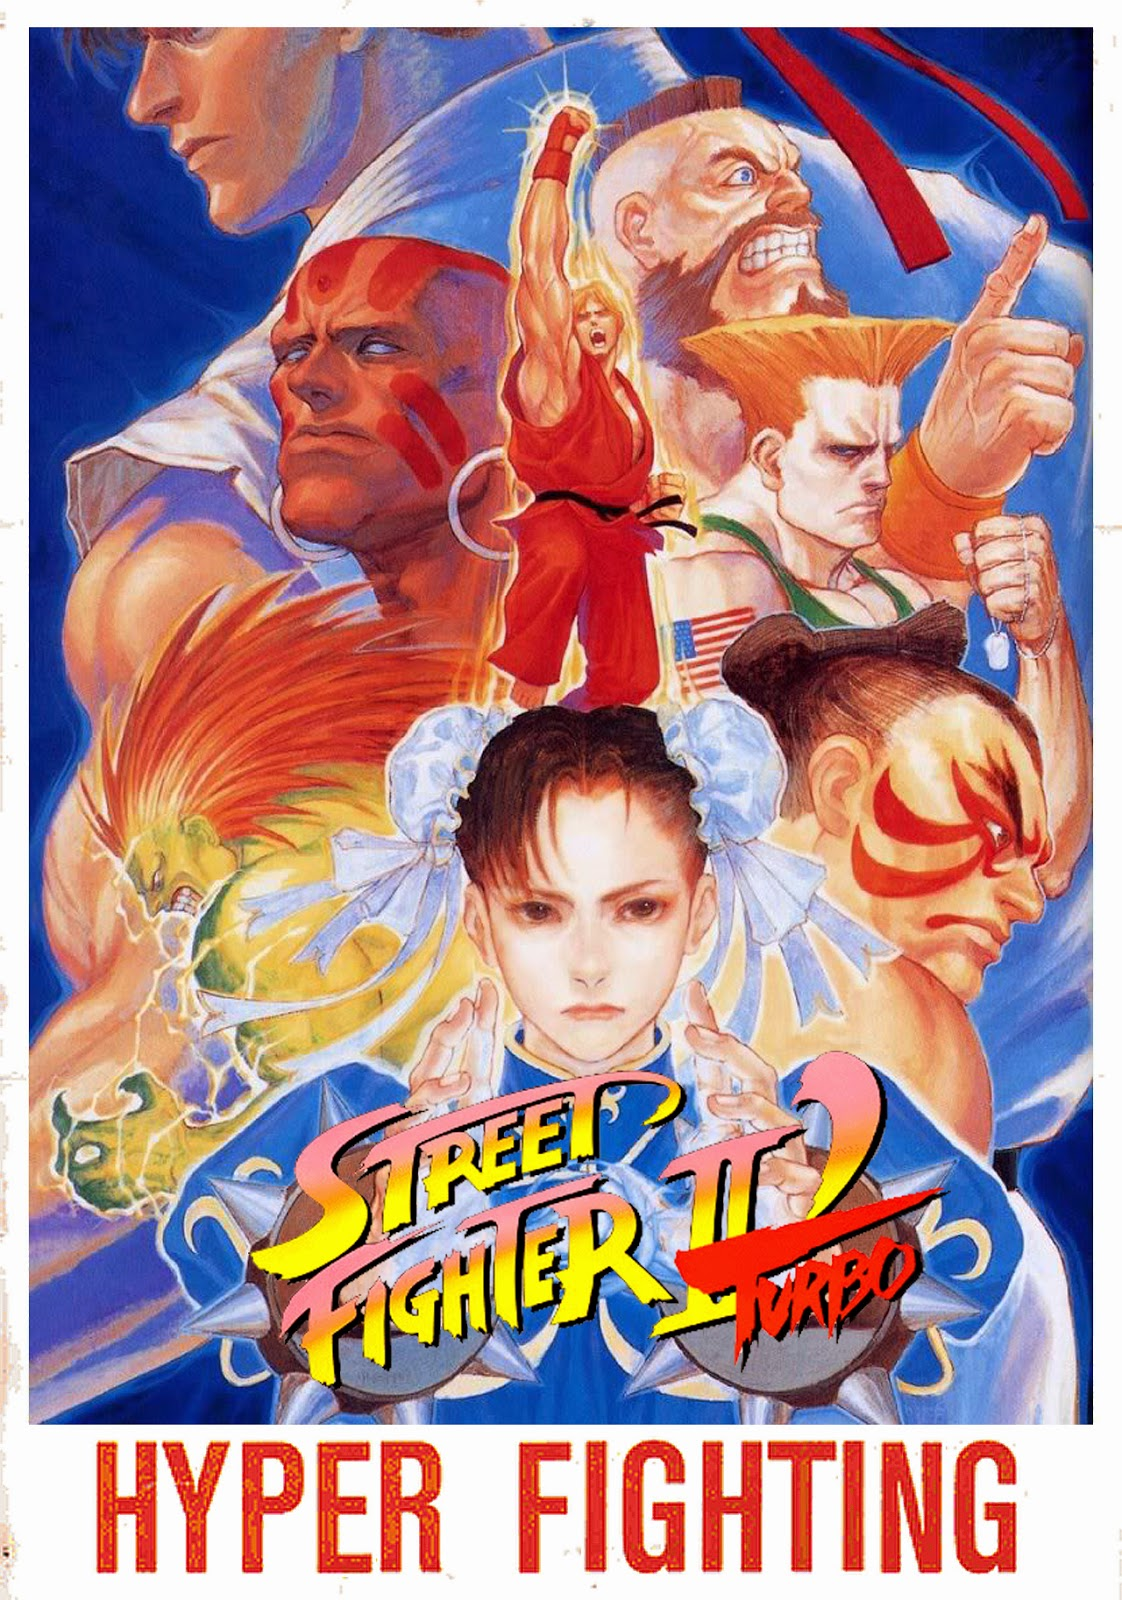 Street Fighter Ii Turbo Hyper Fighting Video Game 1992 Photo